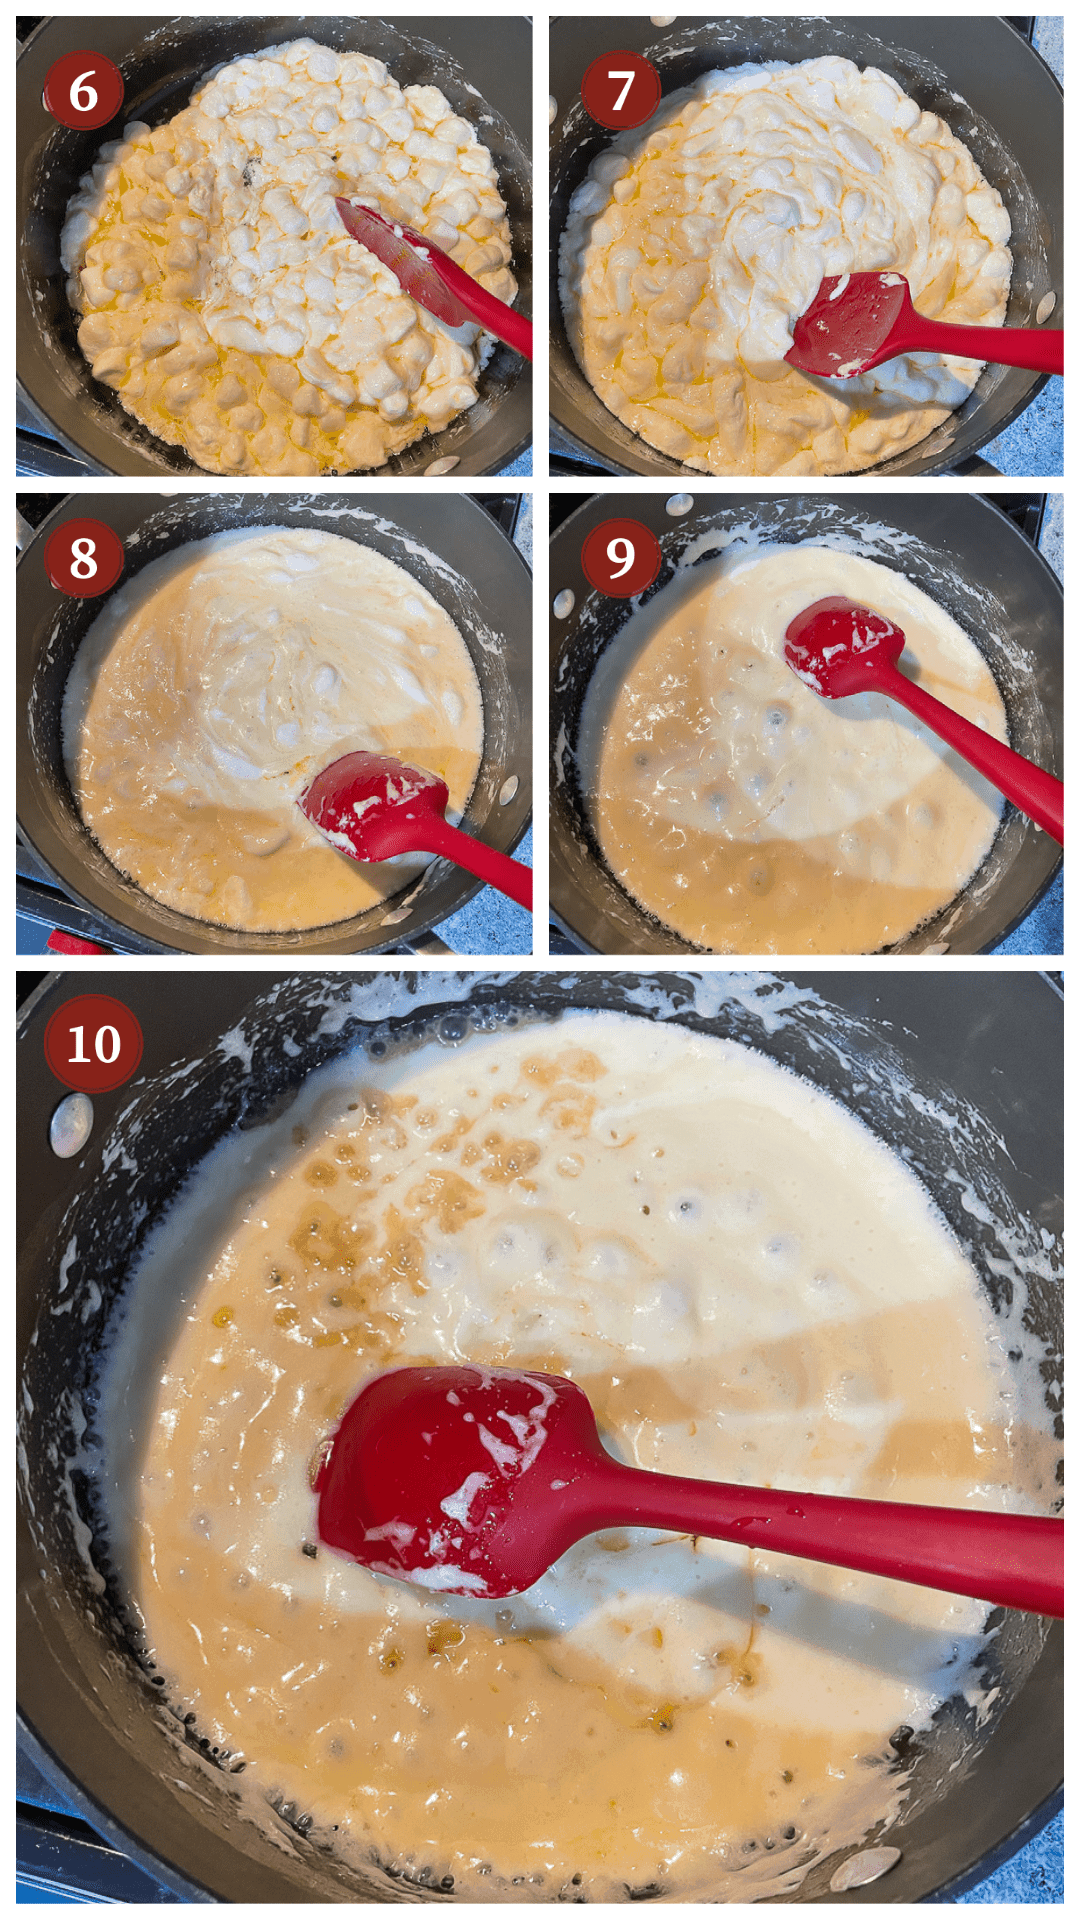 A collage of images showing how to make cinnamon toast crunch cereal treats, steps 6 - 10.